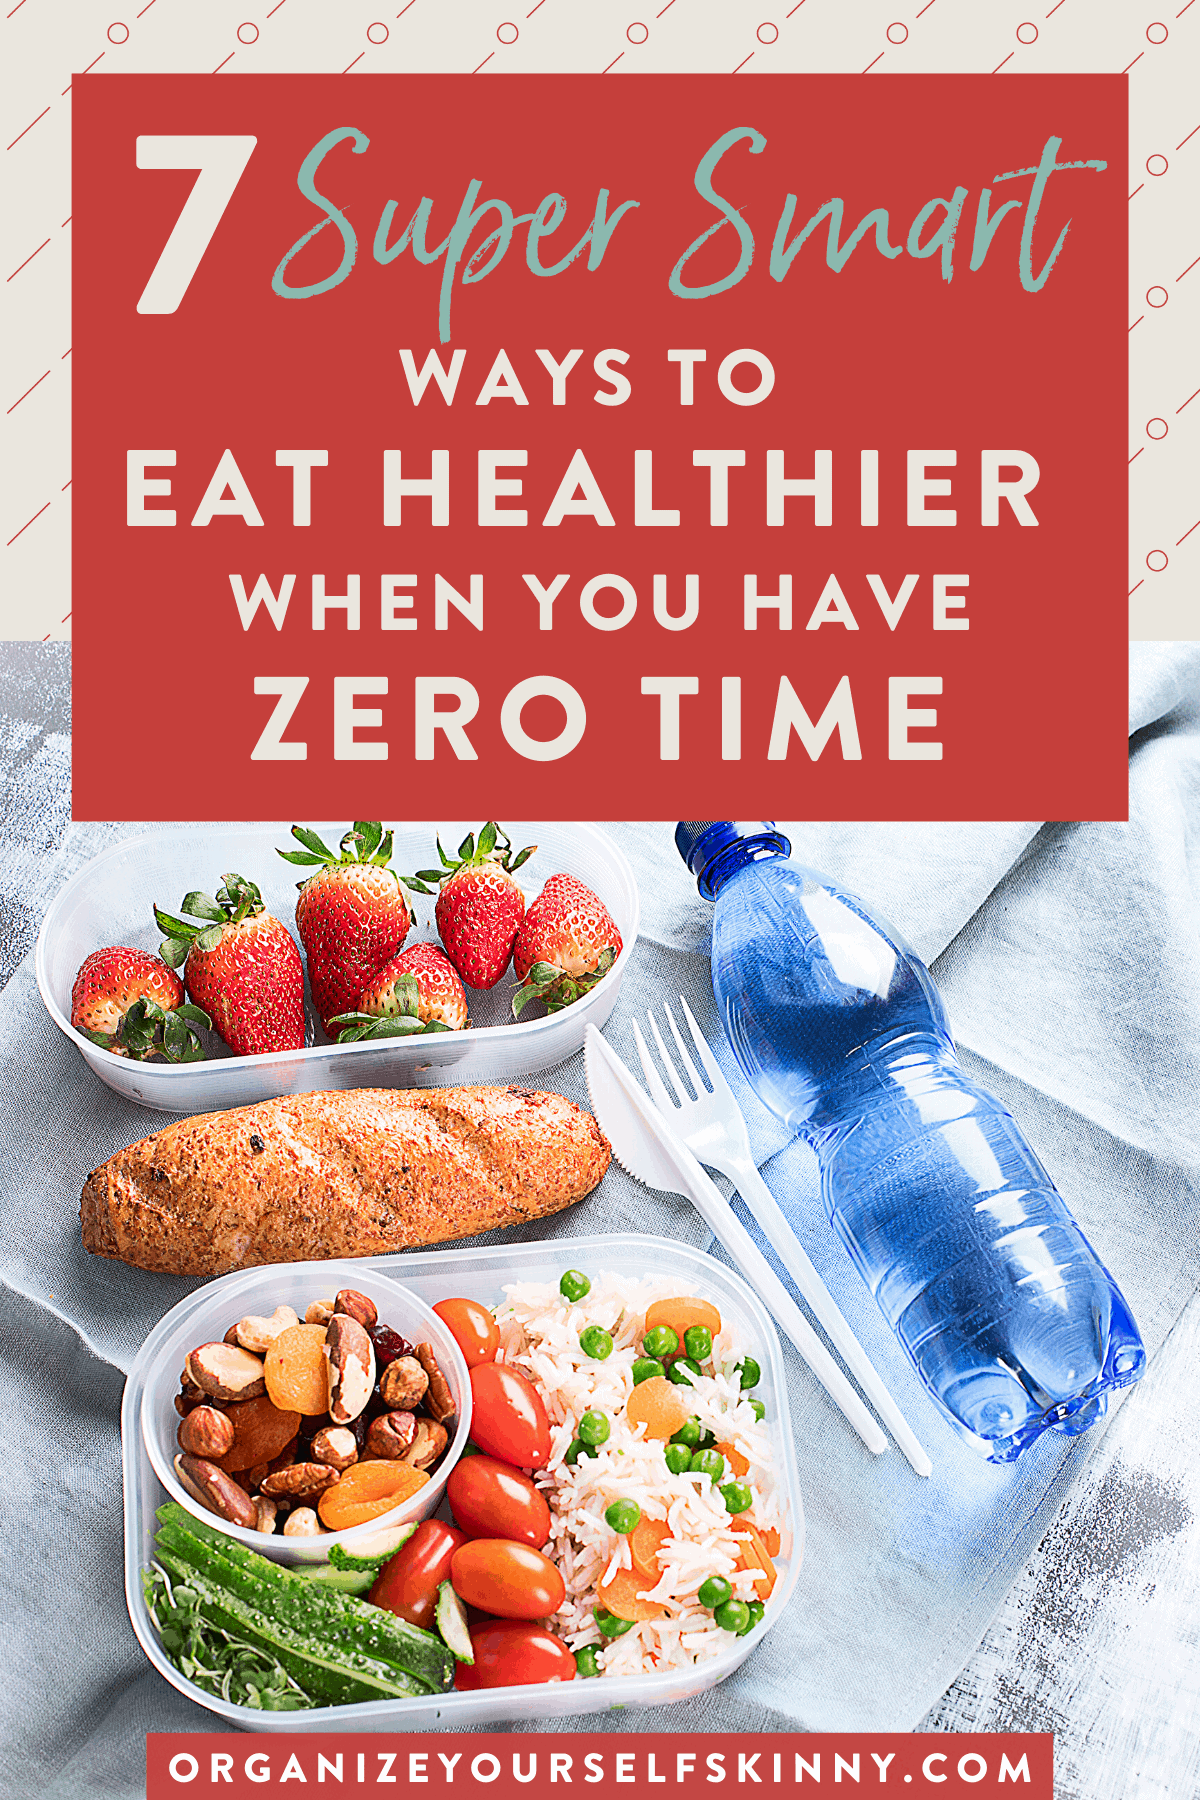 super-smart-ways-to-eat-healthier-when-you-have-zero-time